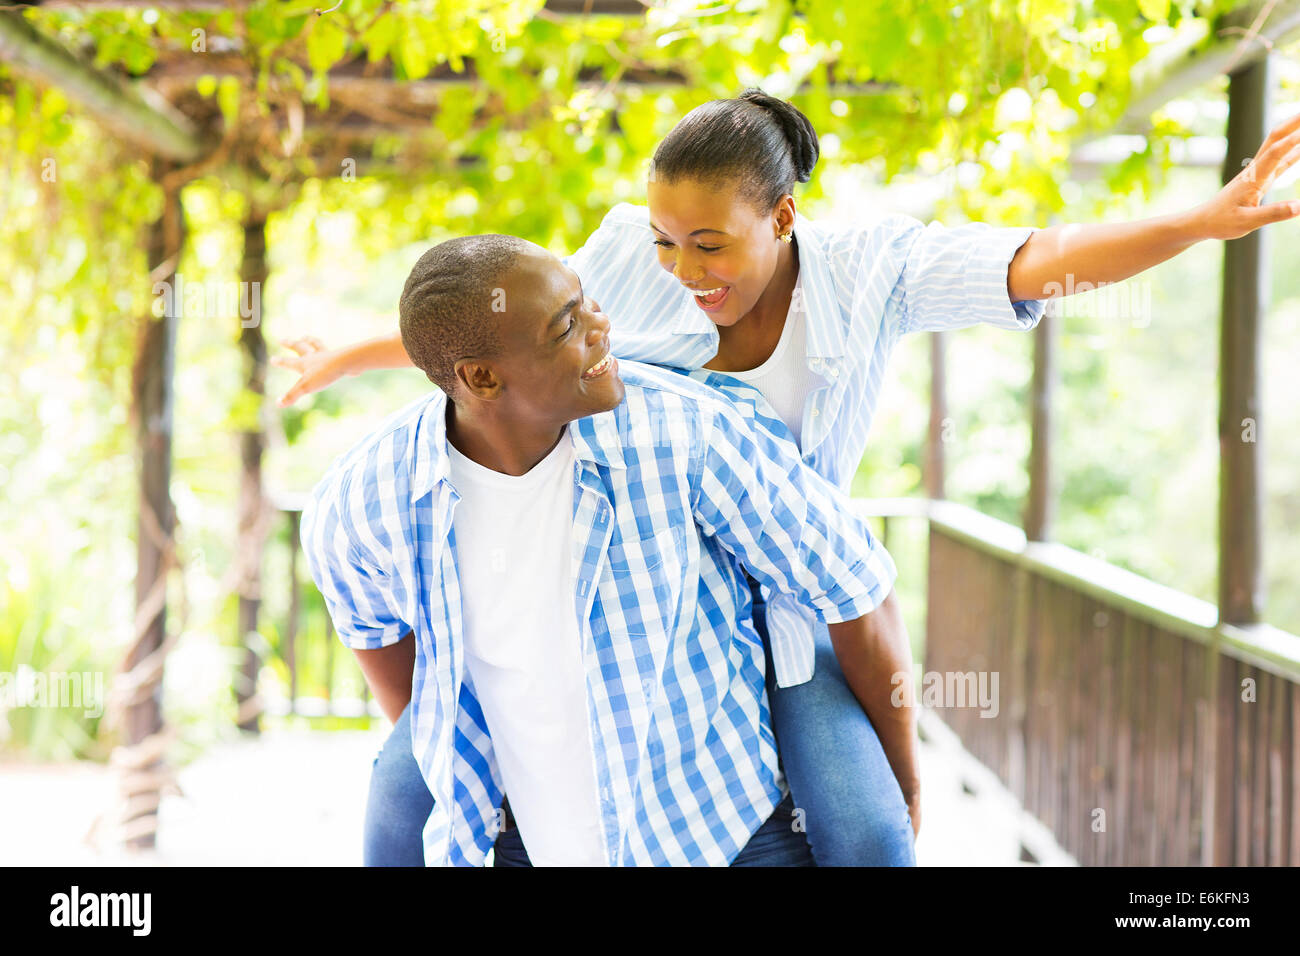 cheerful African American couple piggyback outdoors - Stock Image